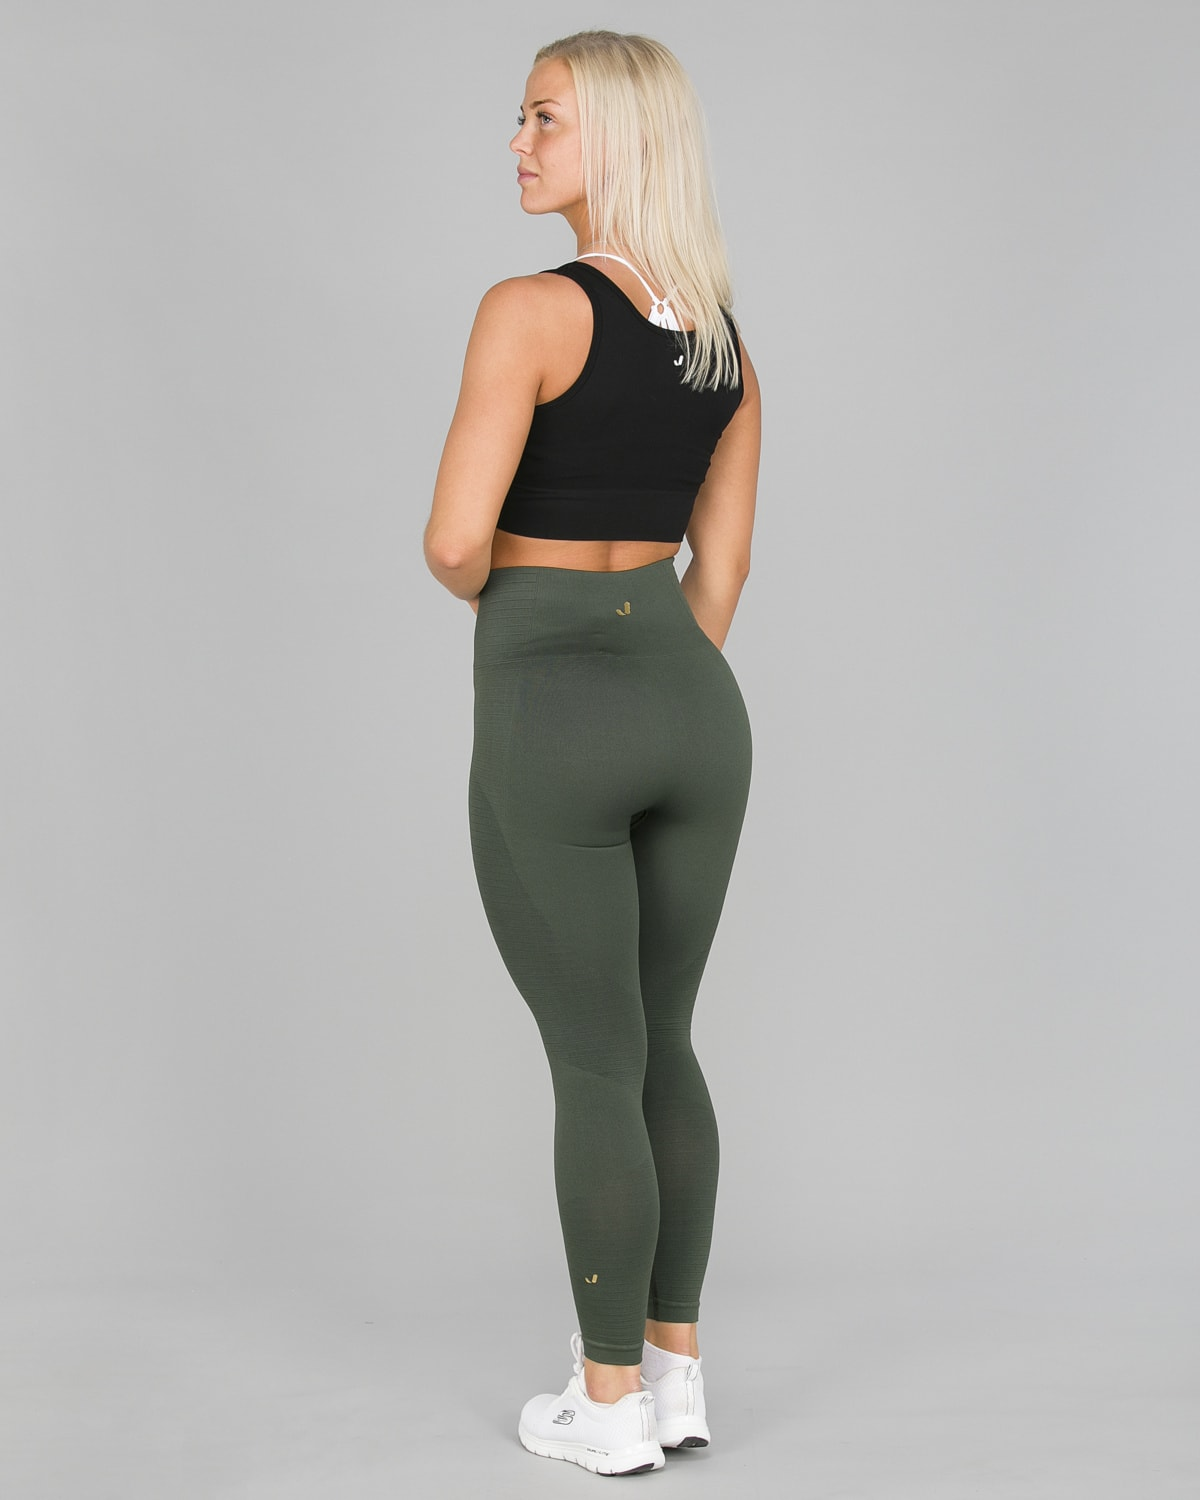 Jerf Gela 2.0 tights dark green7